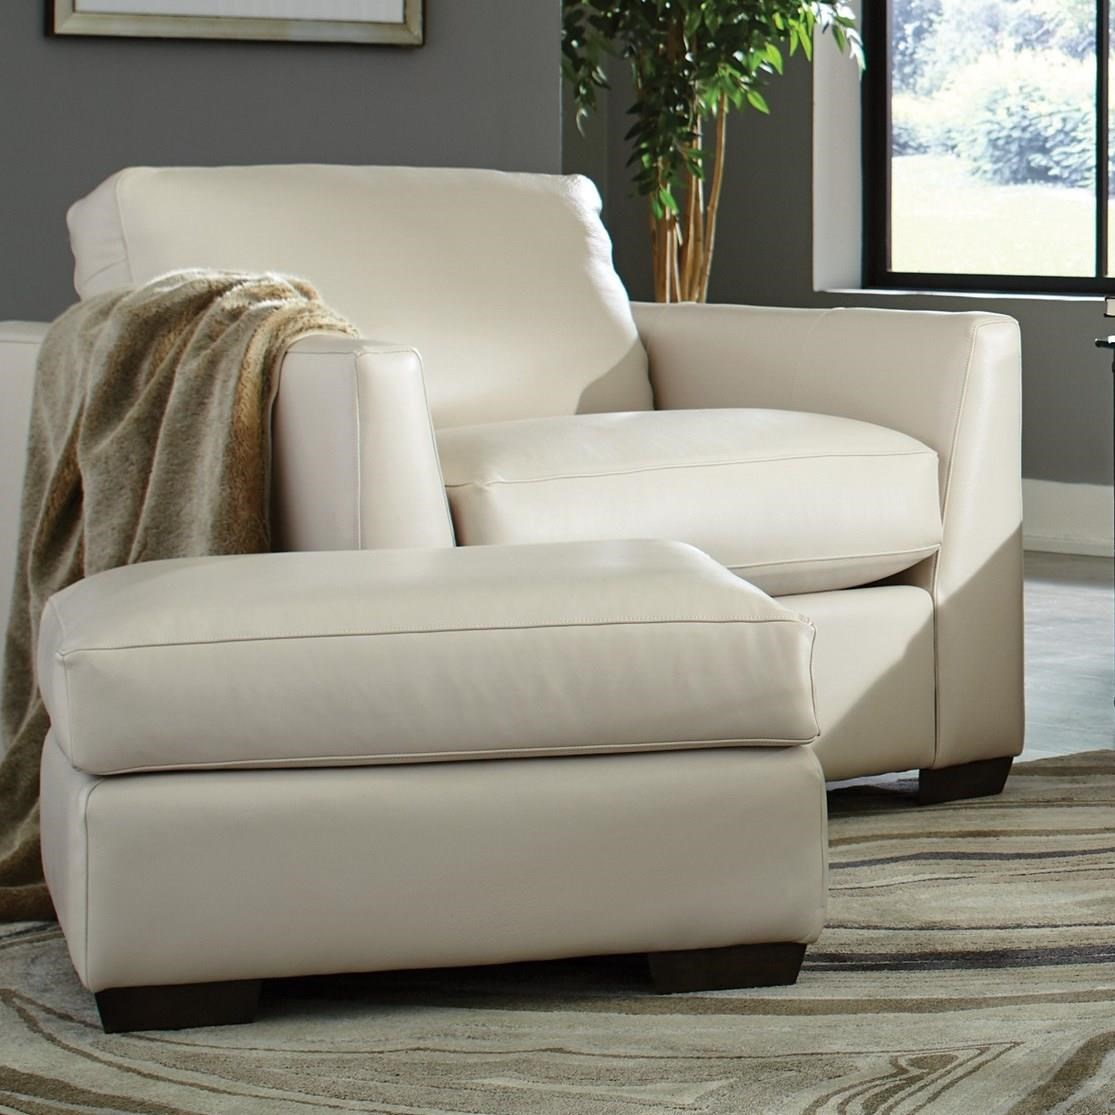 L783950 Chair & Ottoman Set by Craftmaster at Baer's Furniture